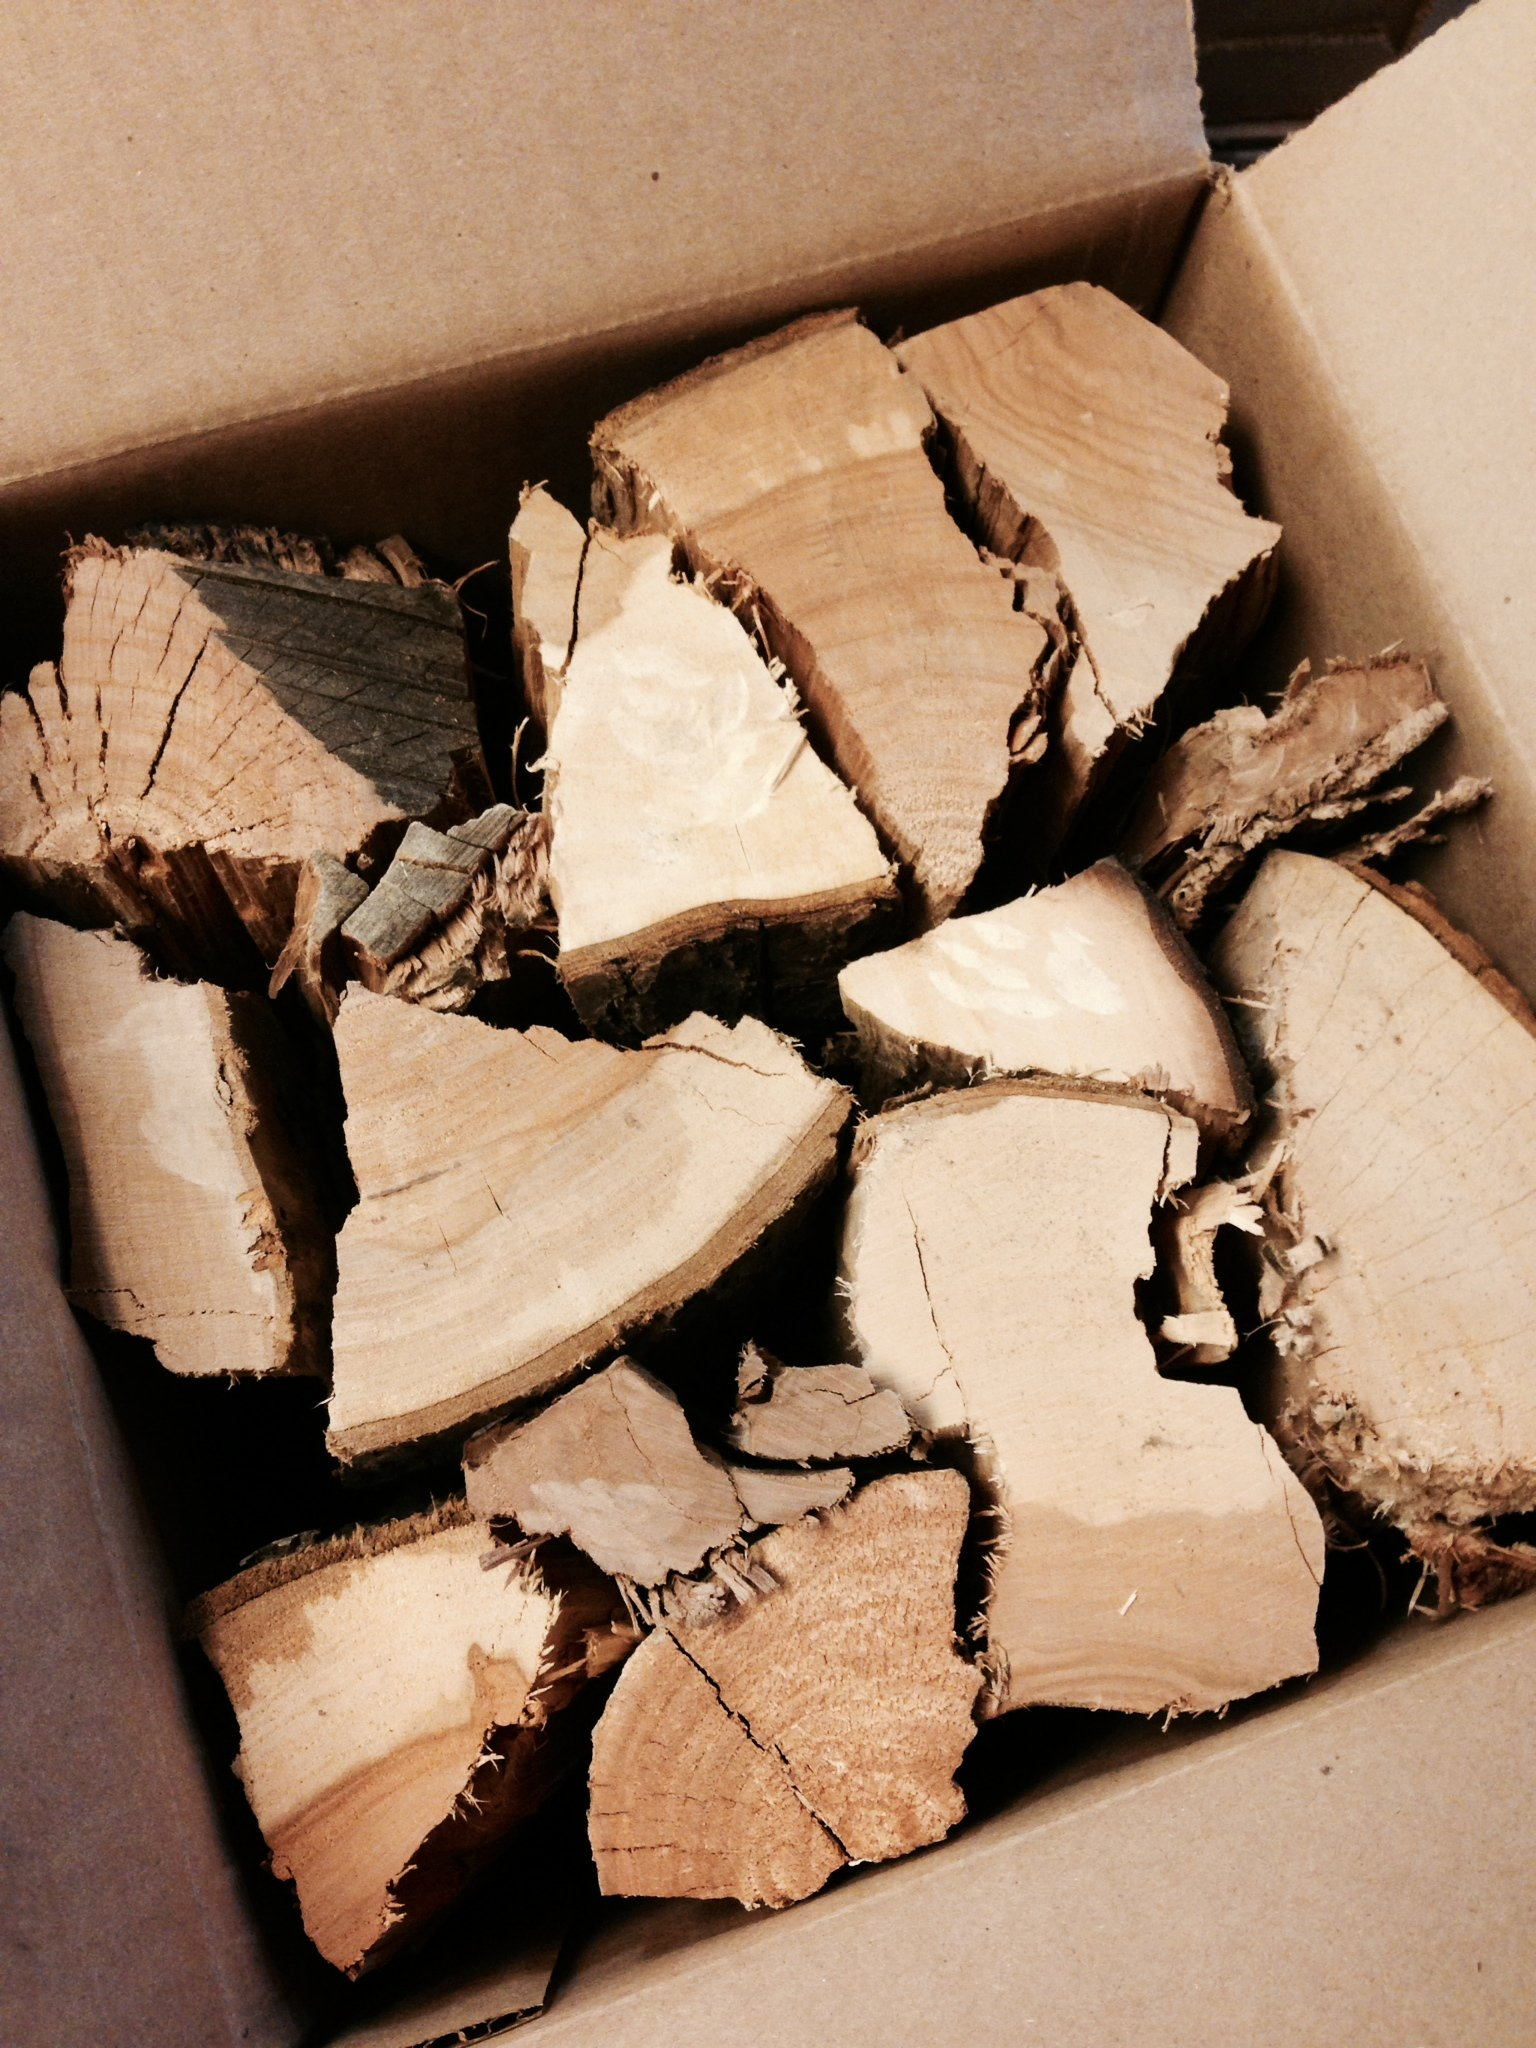 J.C.'s Smoking Wood Sticks - 730 Cu Inch Box - Hickory by J.C.'s Smoking Wood Products